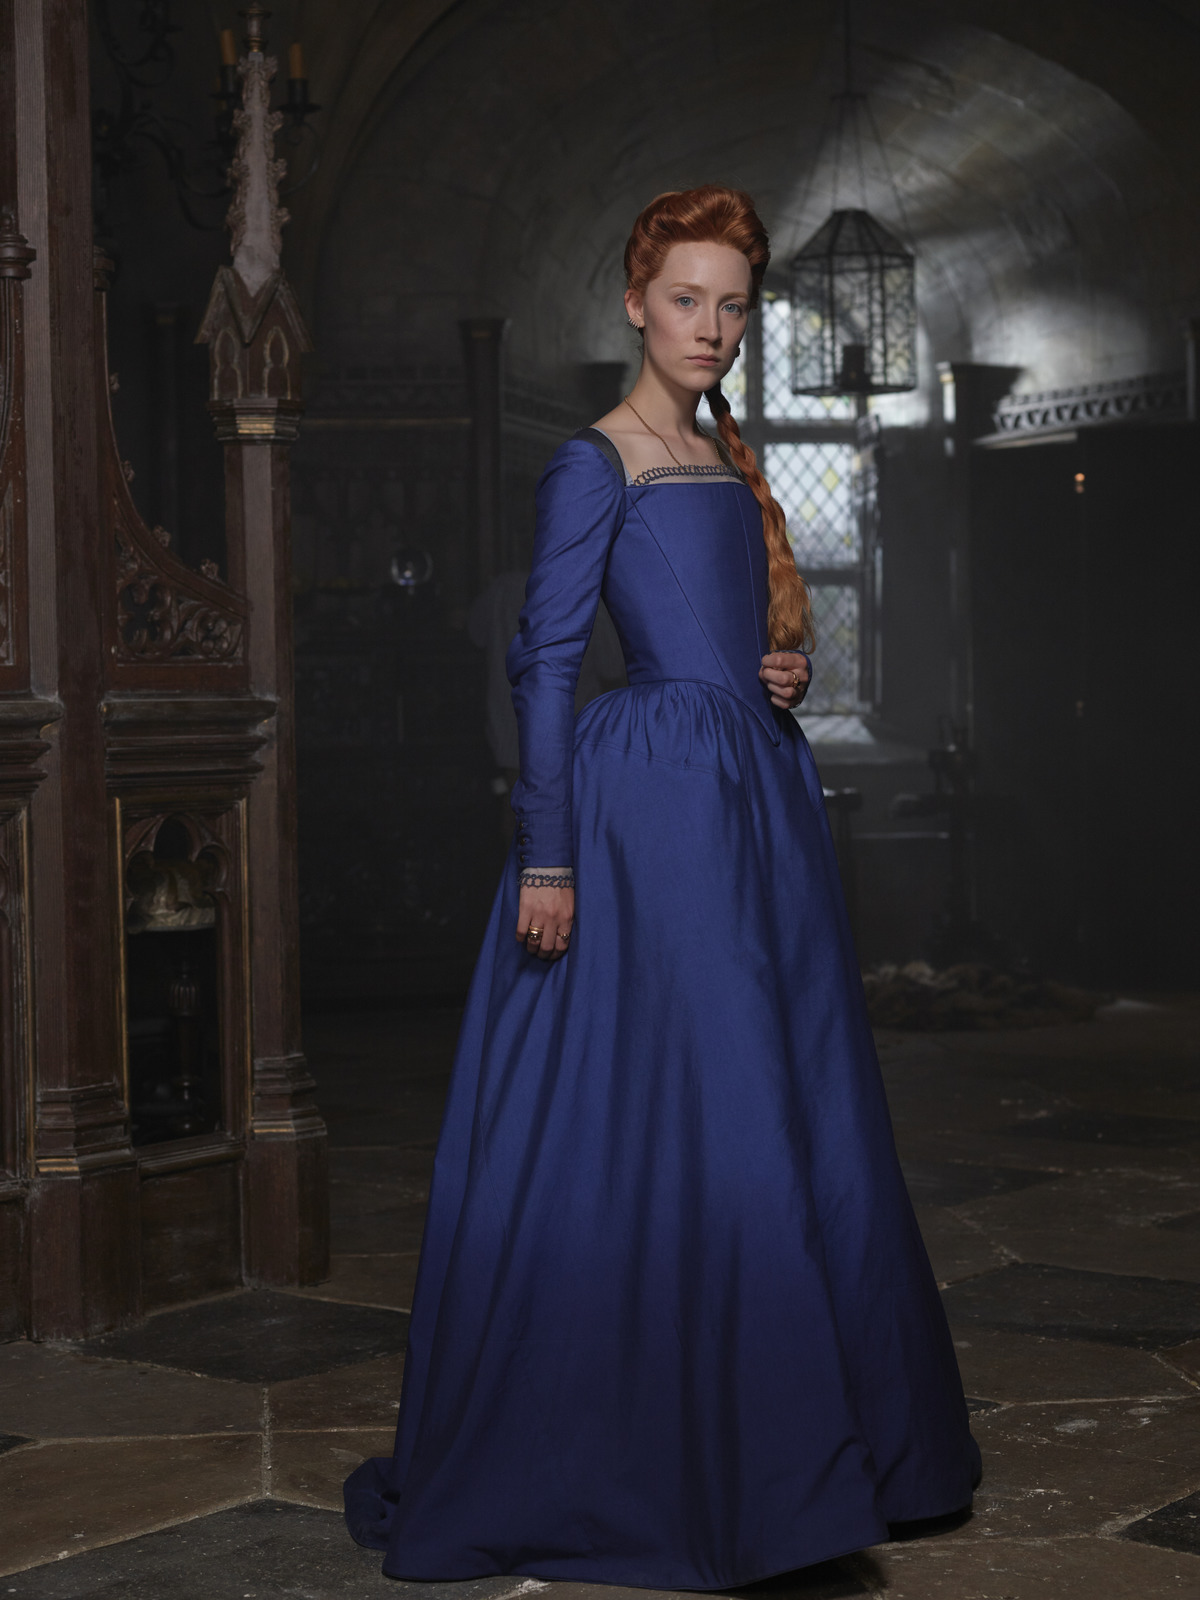 mary queen of scots - photo #19